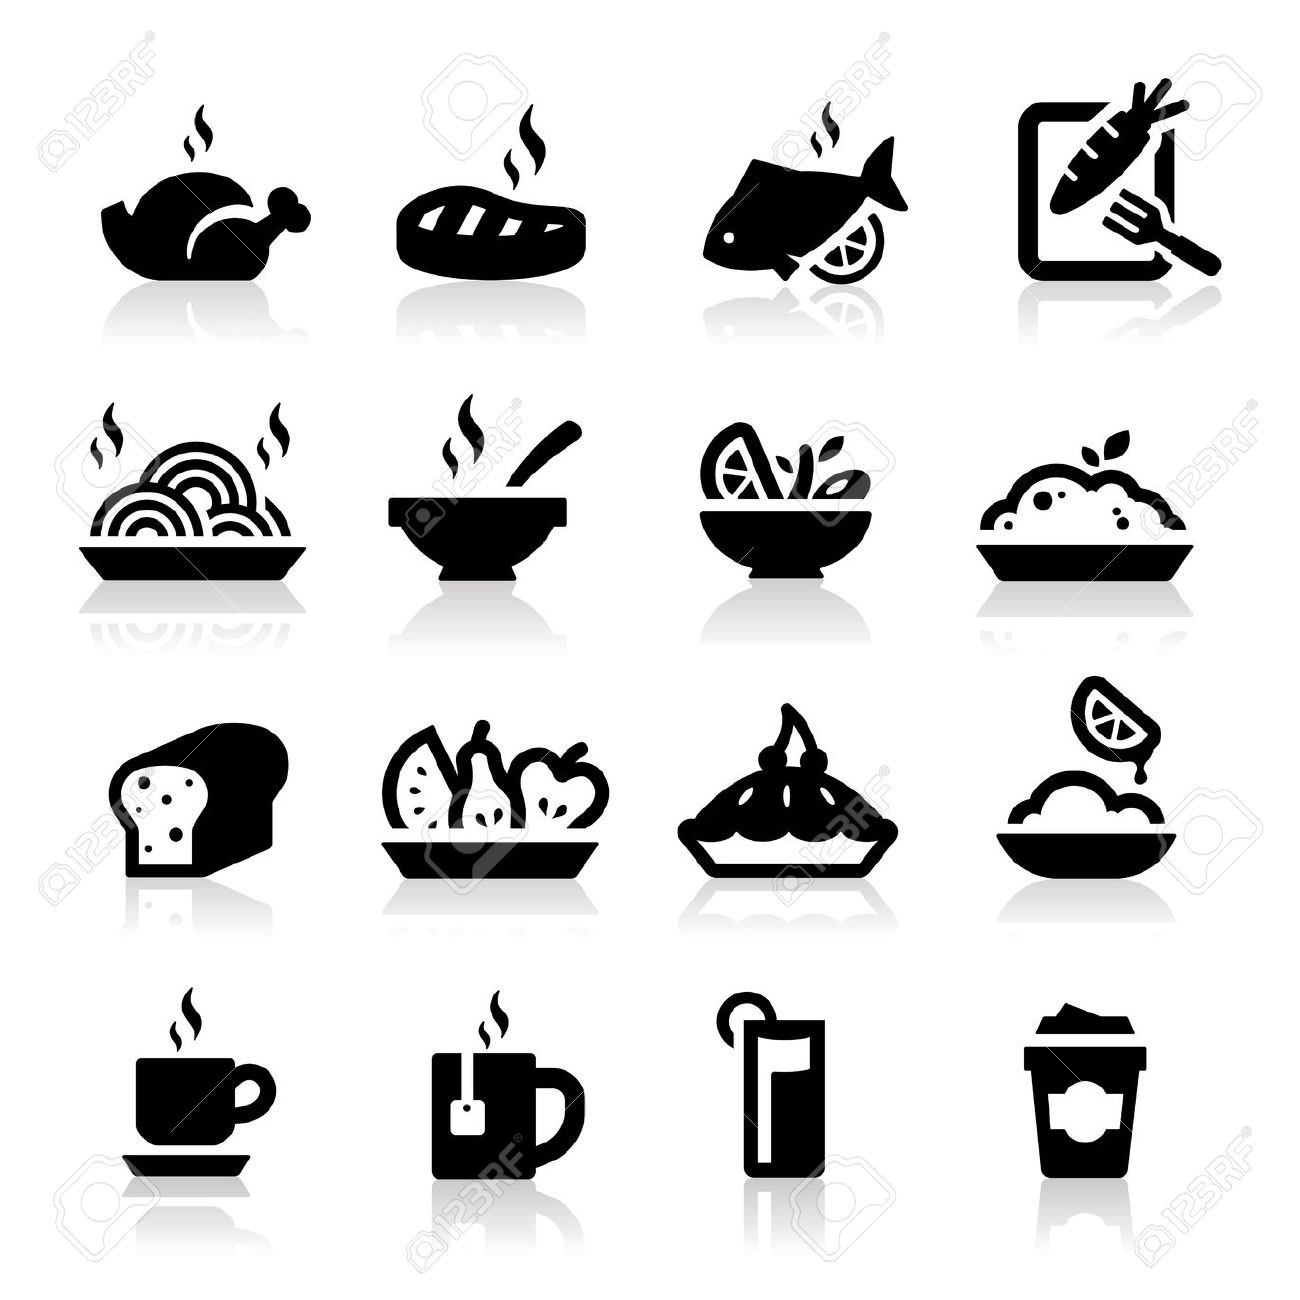 Elegant Food And Drink Clipart Images.